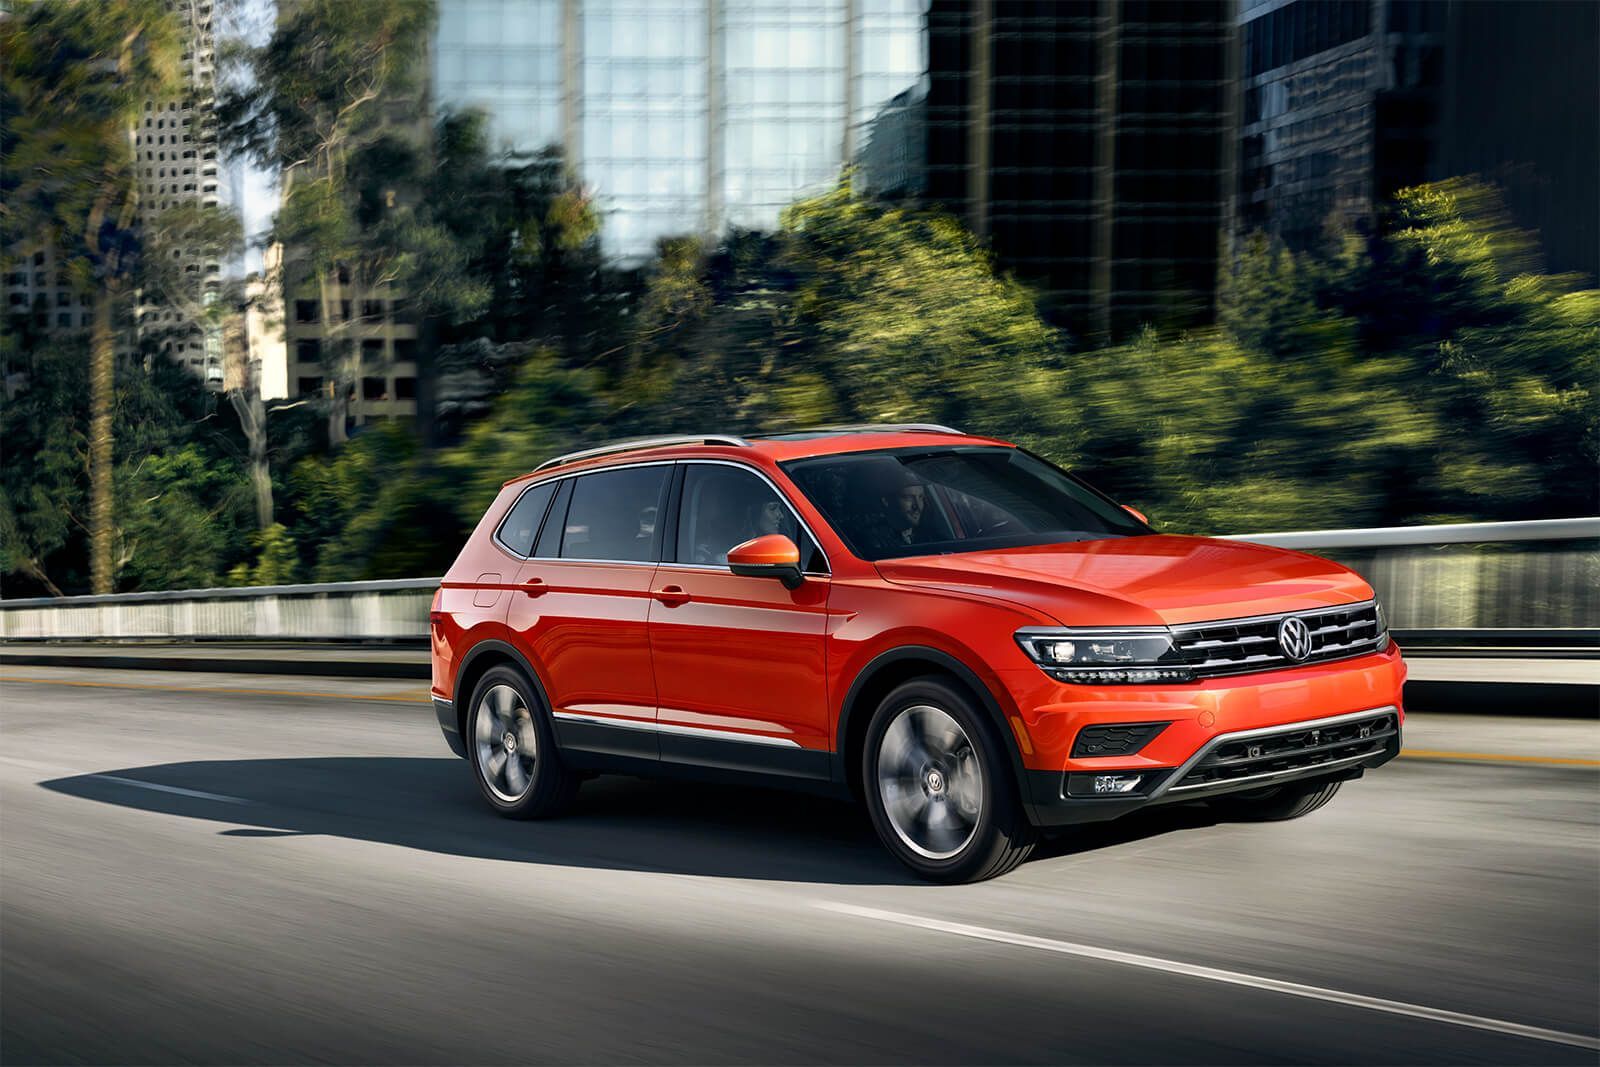 2020 Volkswagen Tiguan Review, Pricing, And Specs - 2022 Volkswagen Tiguan Red Specification Option, Release Date